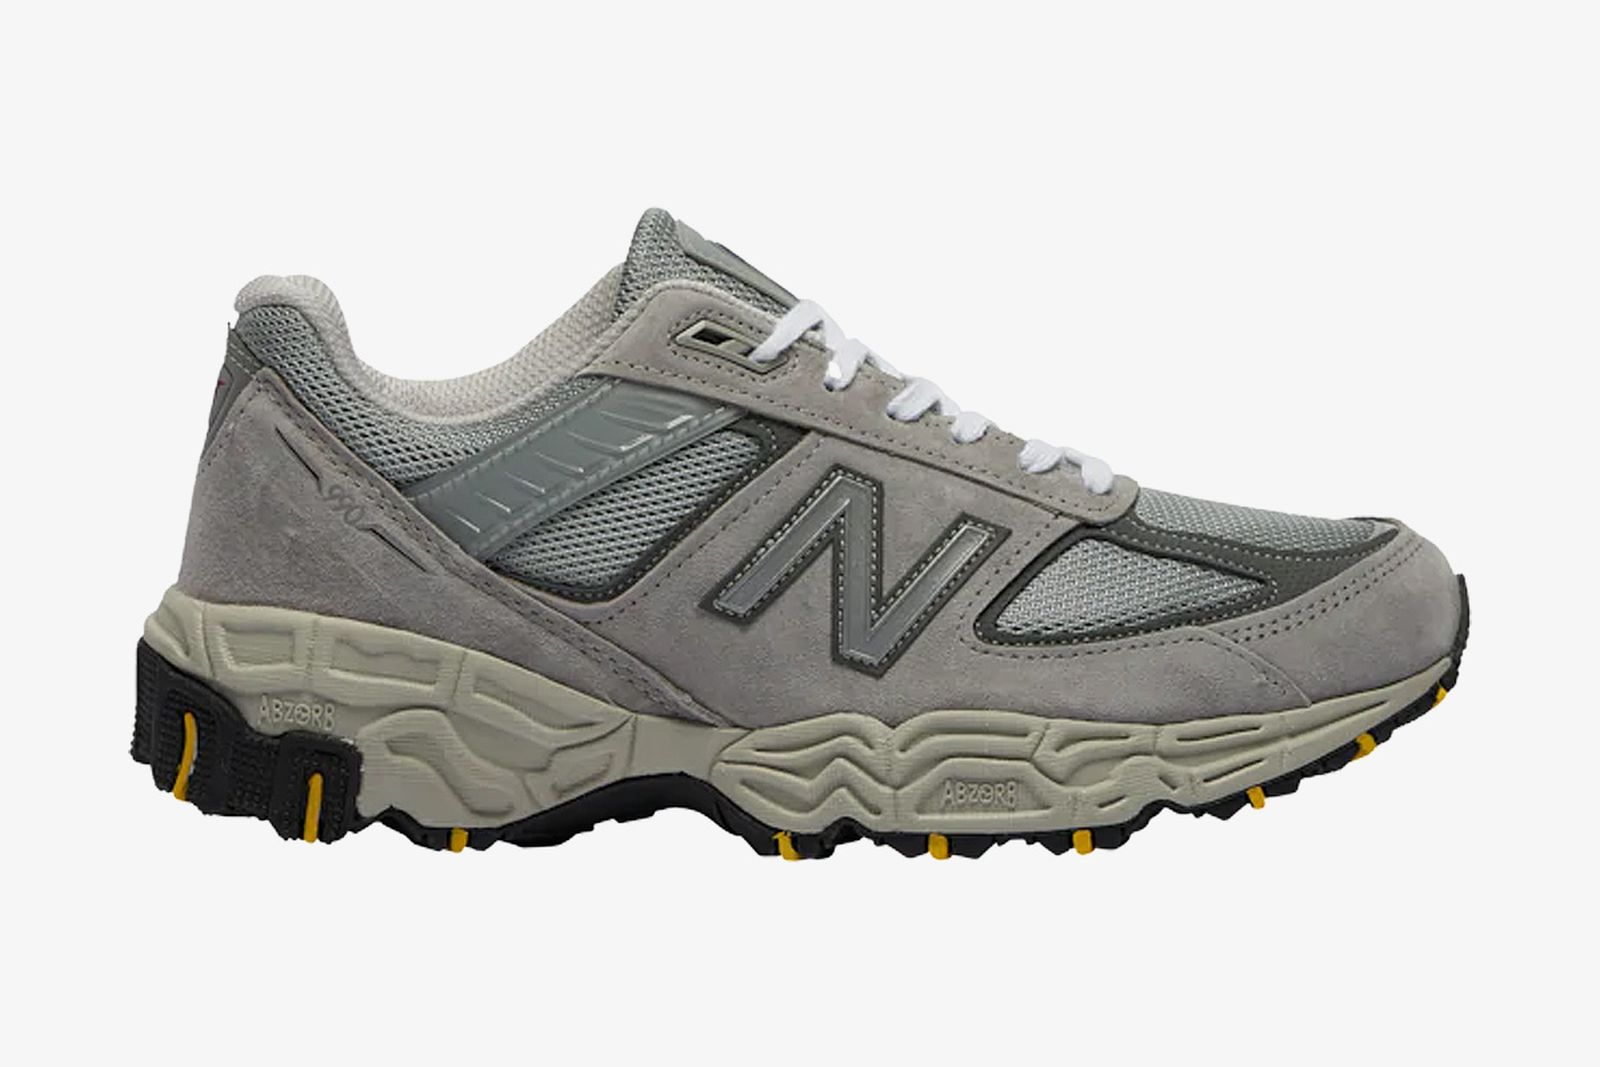 new balance 990801 trail runner release date price New Balance 801 New Balance 990V5